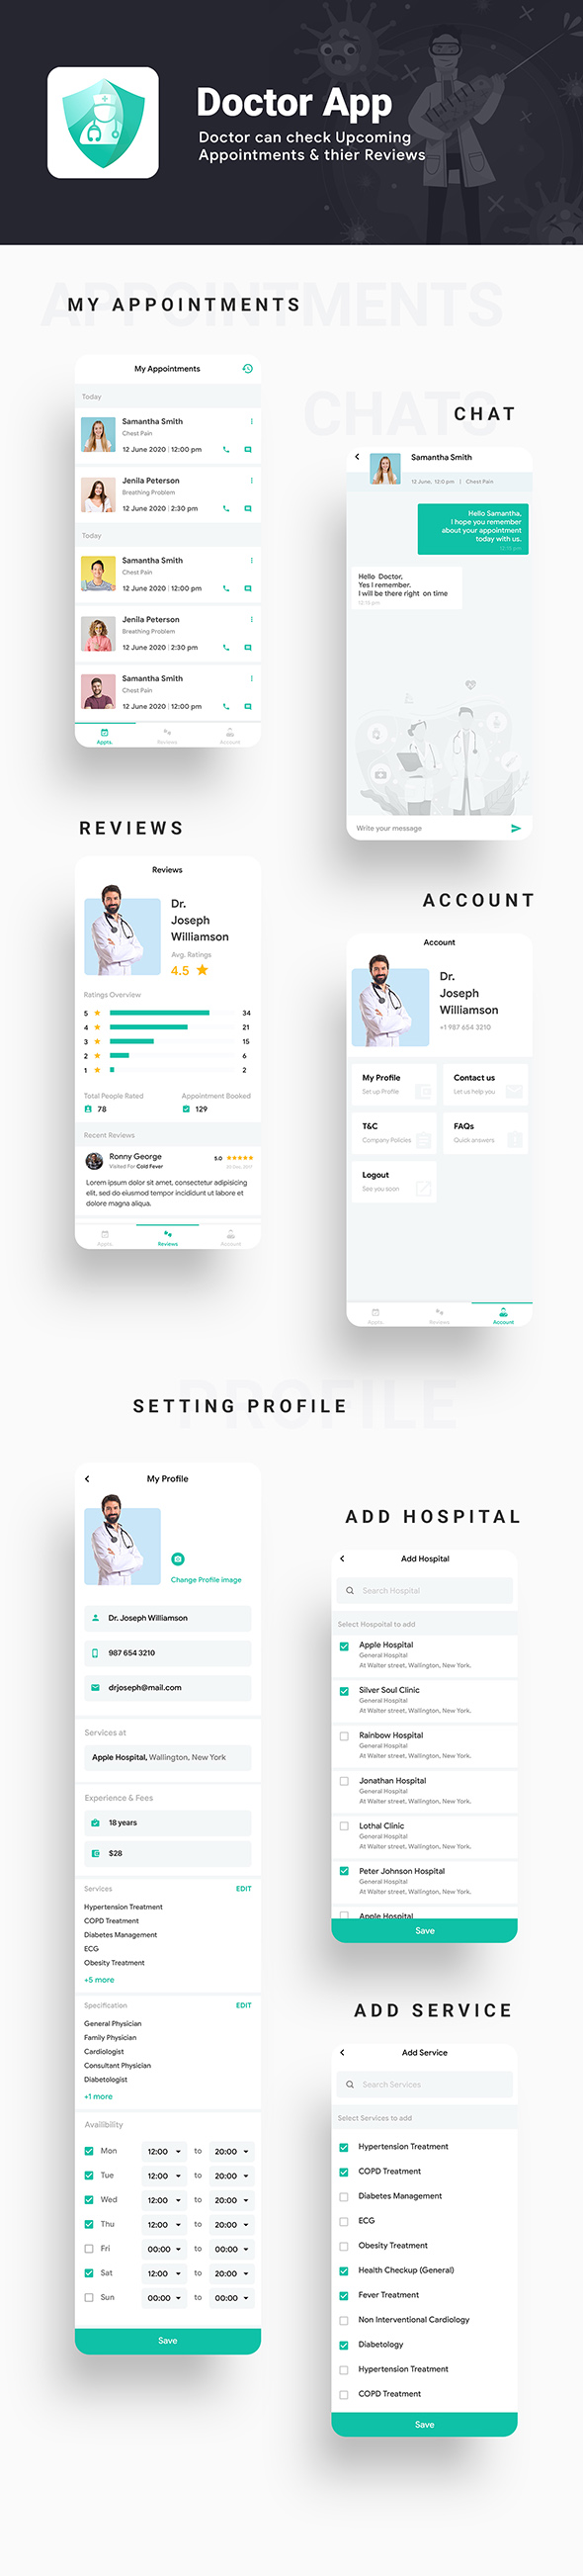 Nearby Doctor App| Online Medicine | Doctor Appointment Booking App |Android + iOS Template| FLUTTER - 5